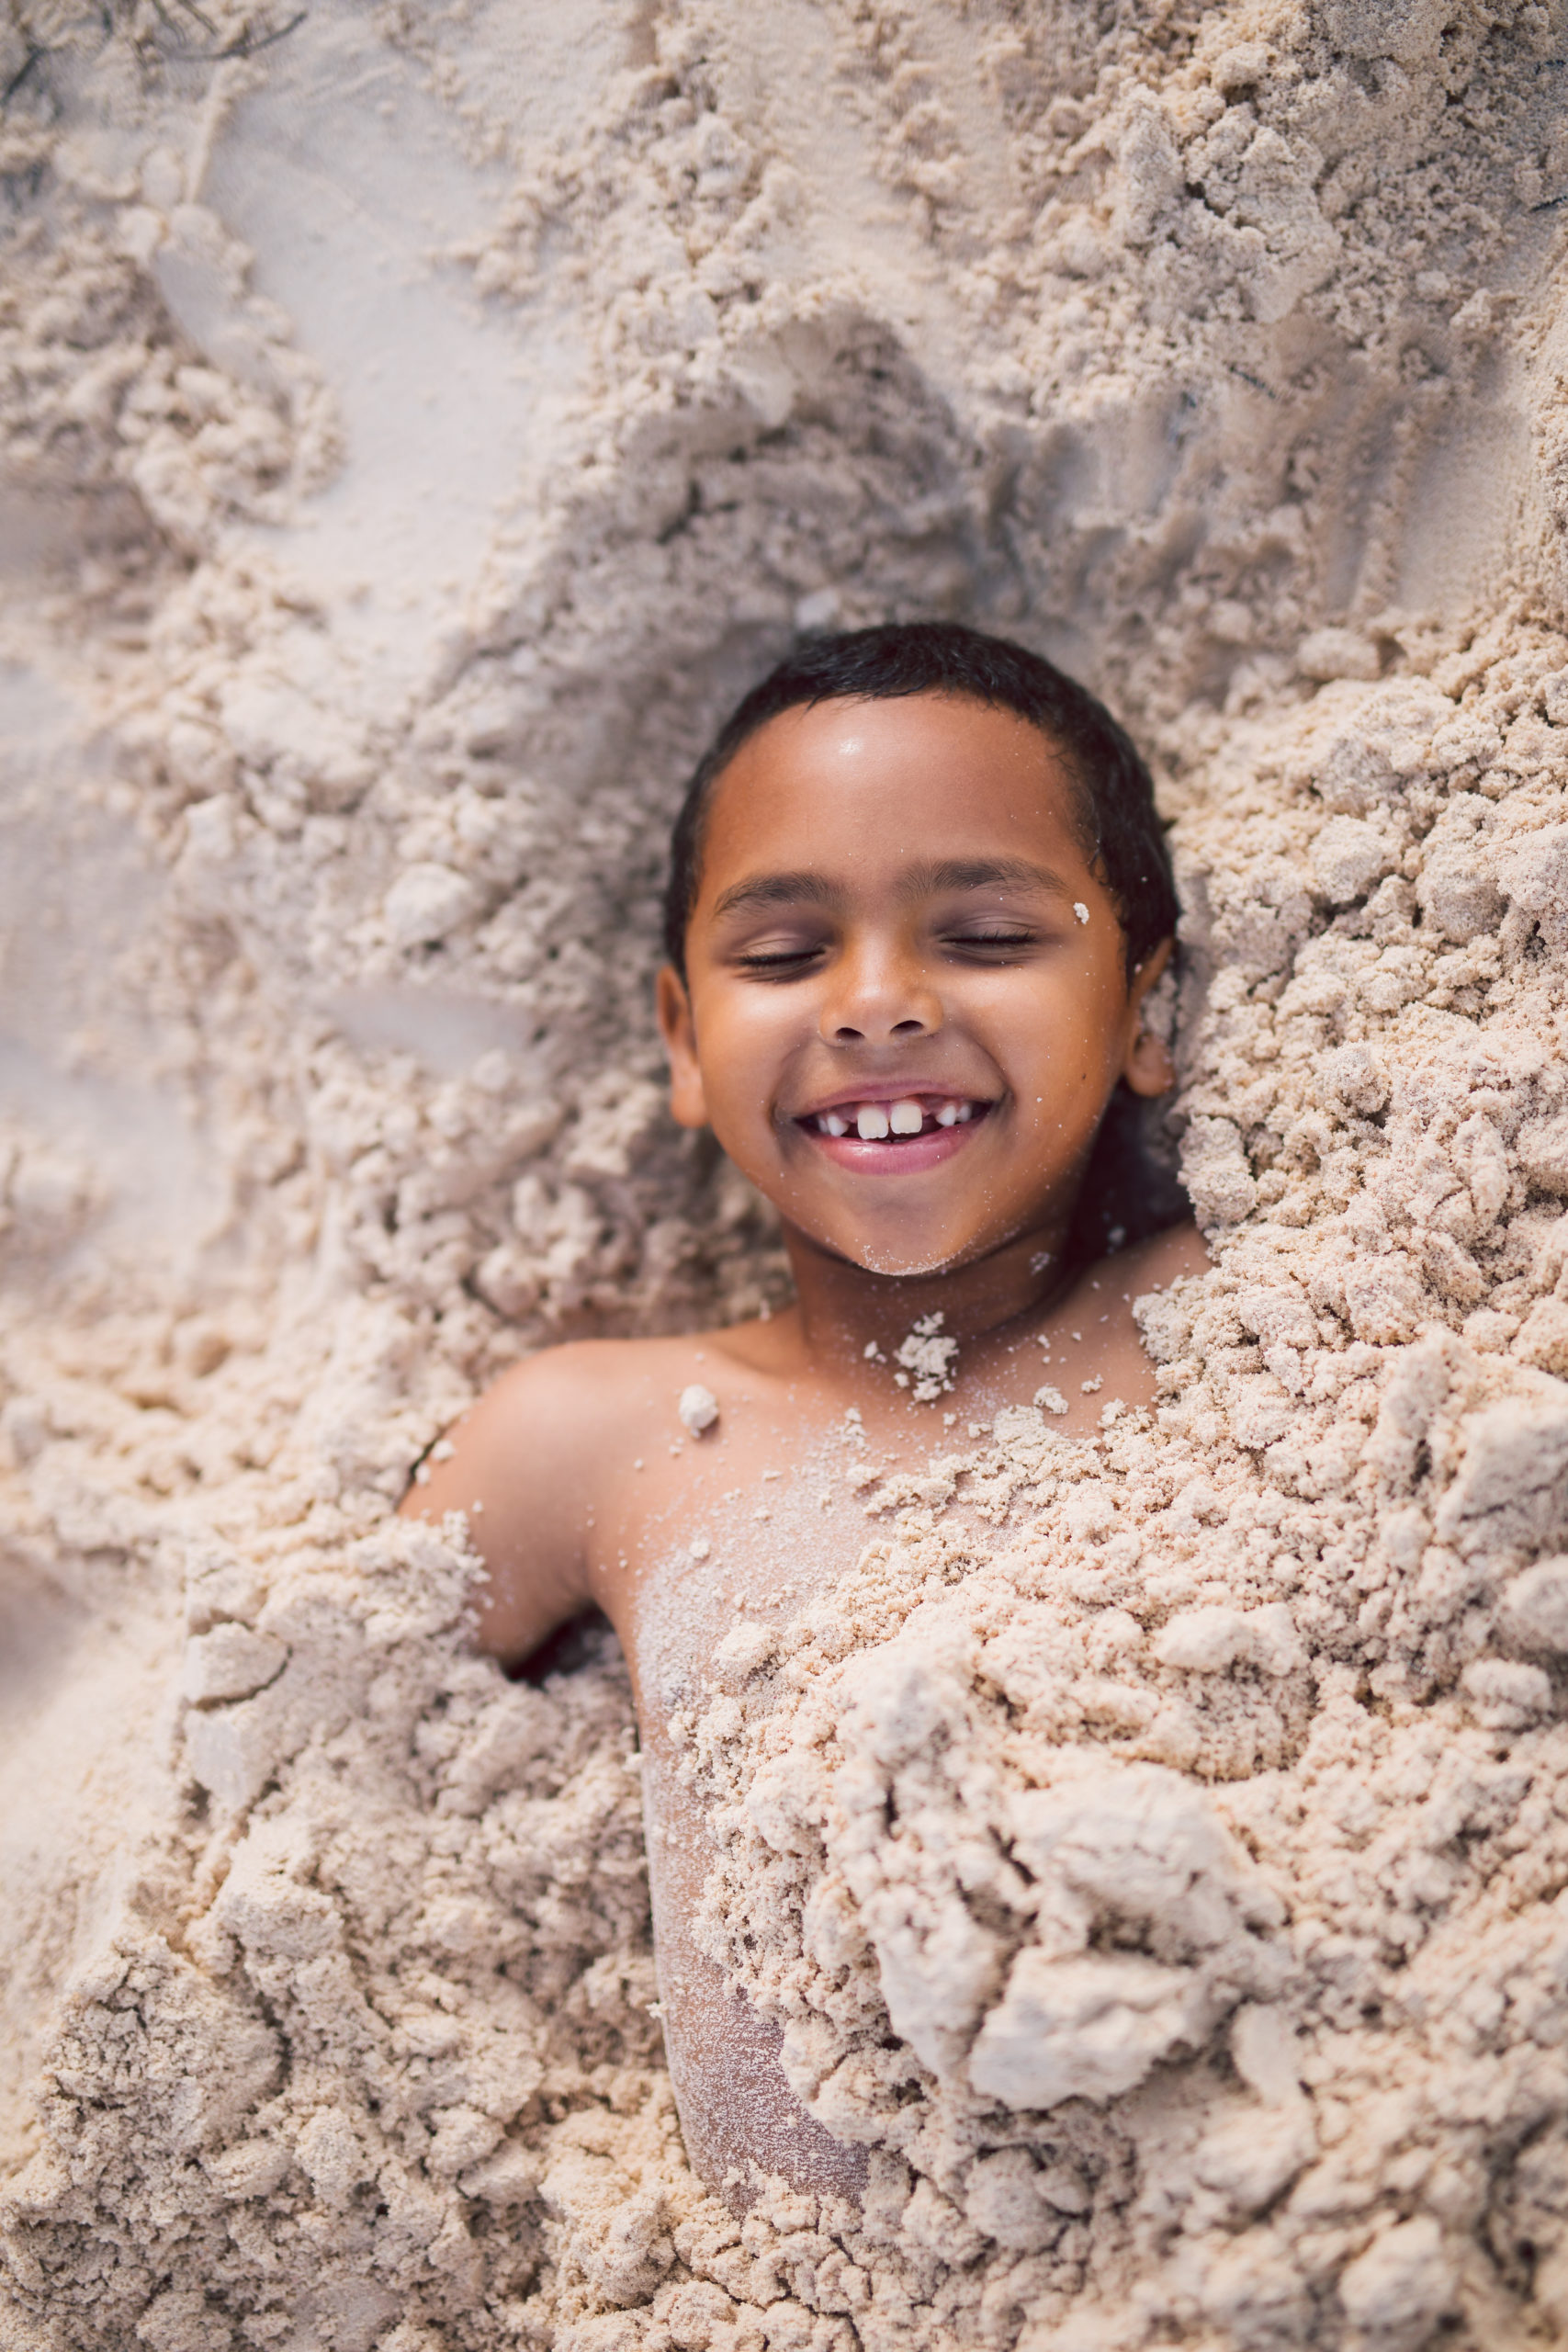 child buried in the sand at the beach